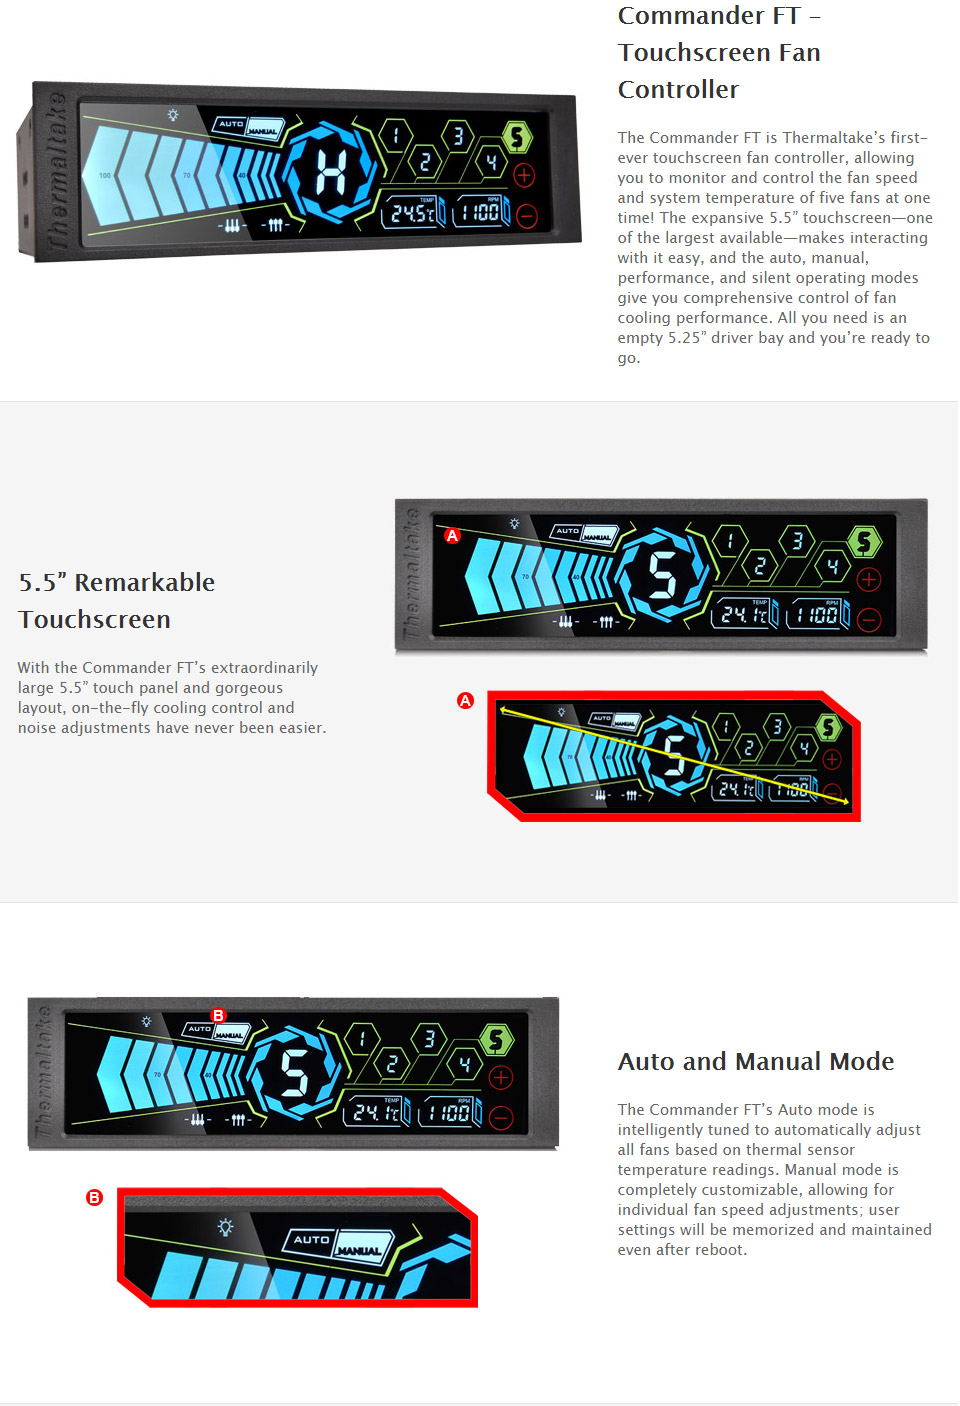 Thermaltake commander ft touchscreen fan controller tt ac 010 it has an expansive 55in display with auto manual performance and silent modes for comprehensive control of cooling performance publicscrutiny Choice Image